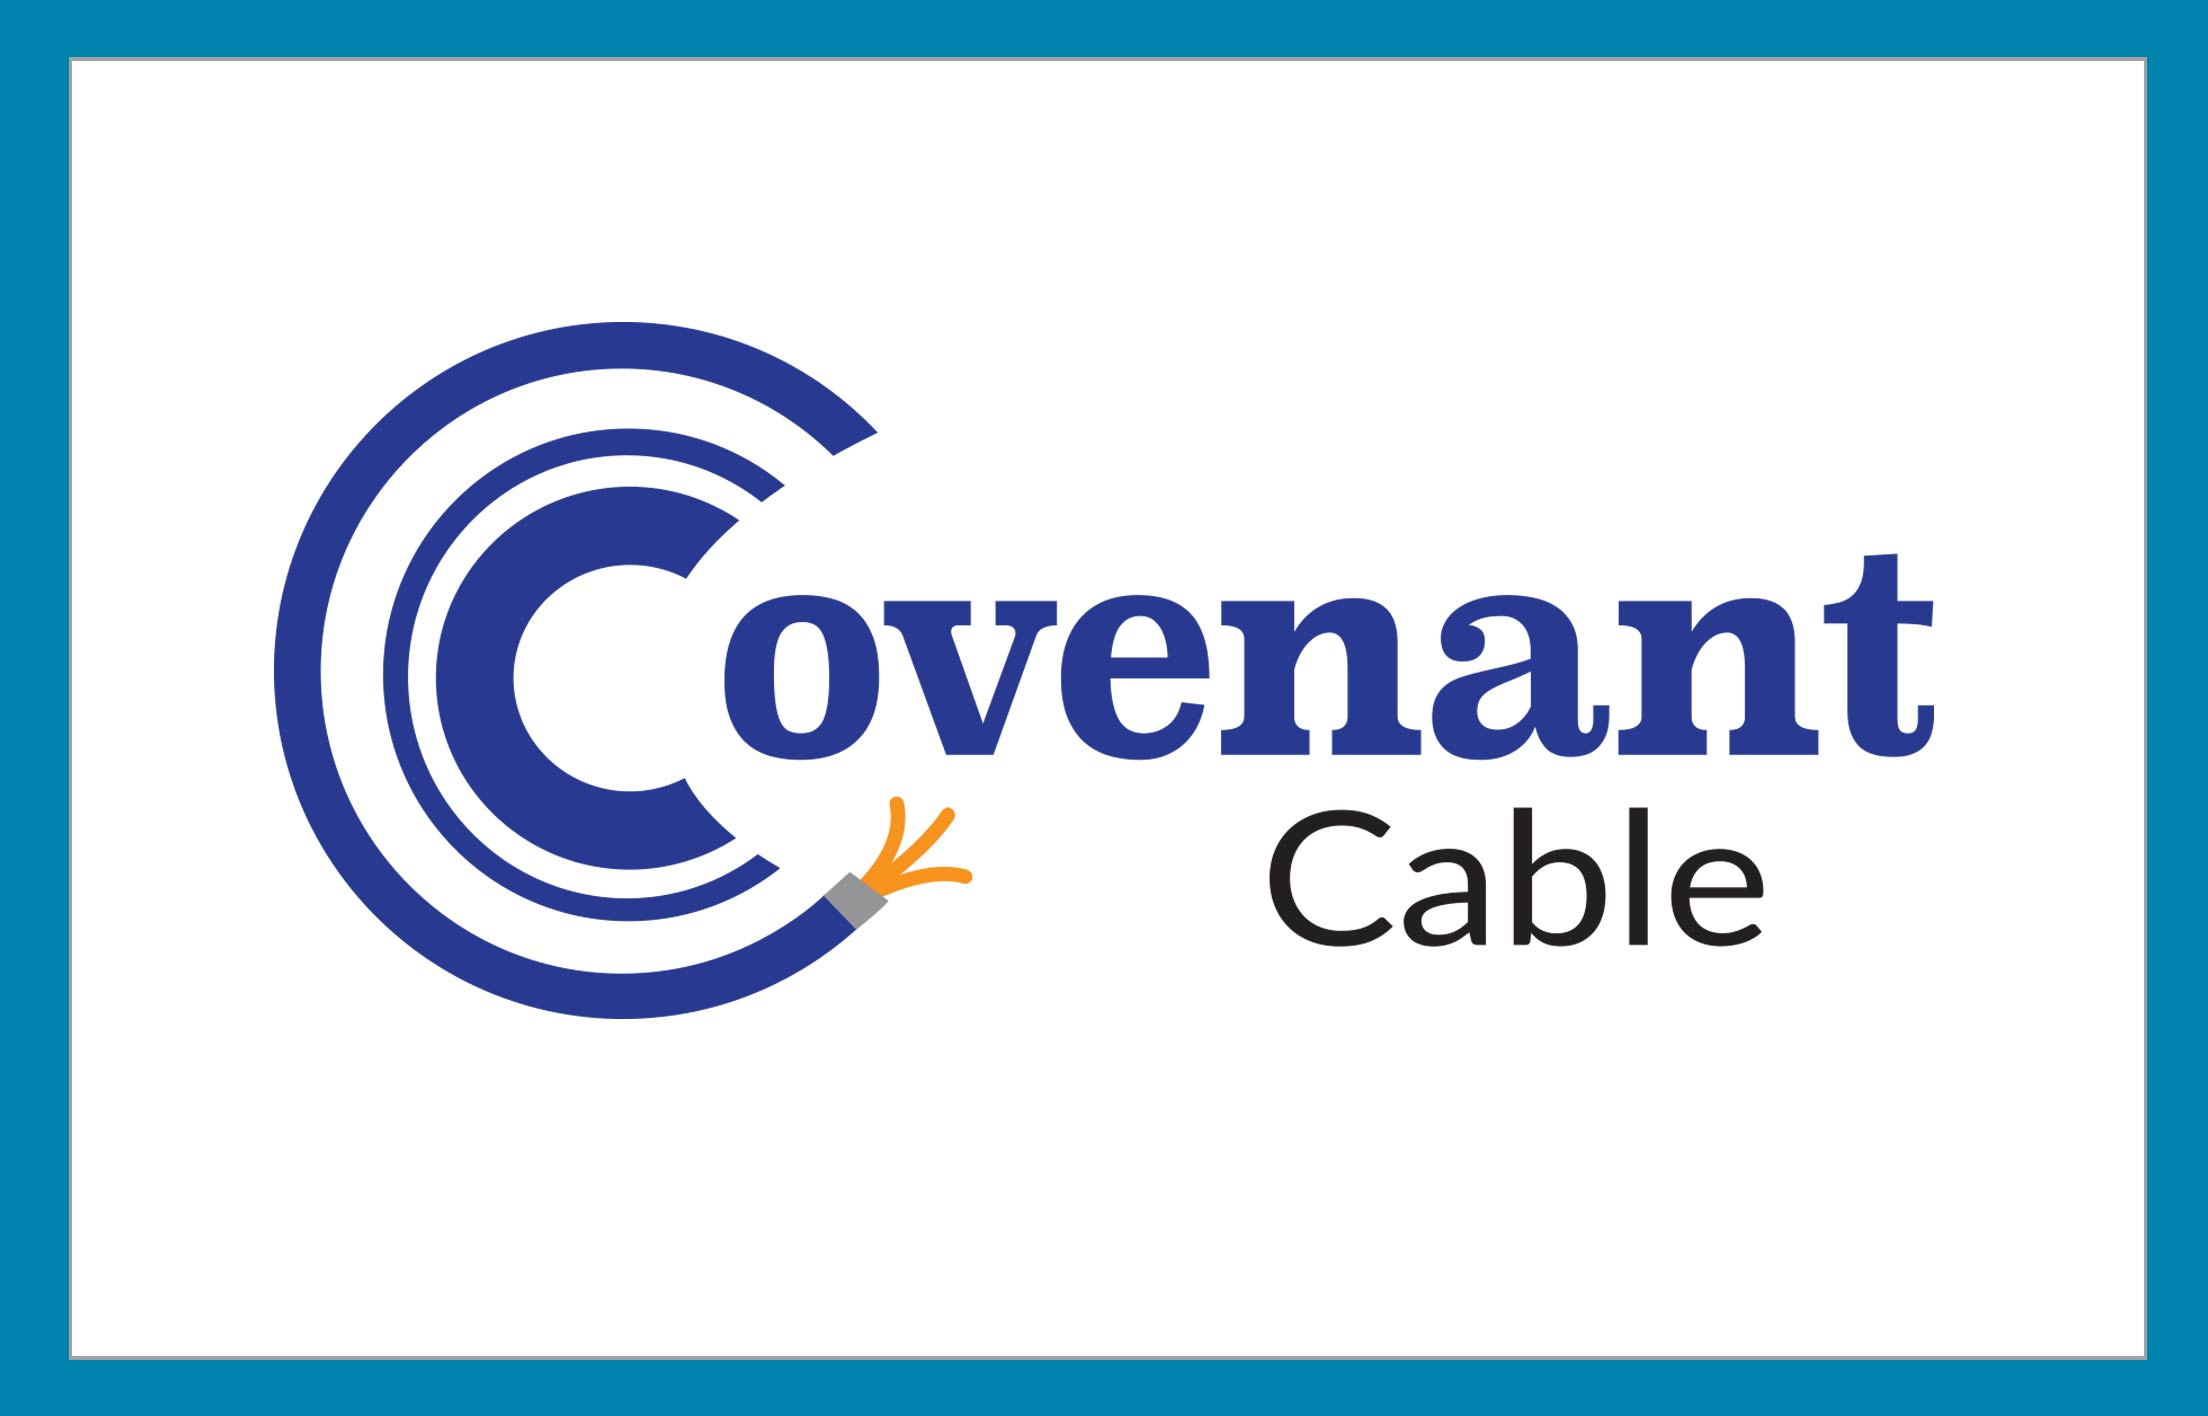 Covenant Cable Logo